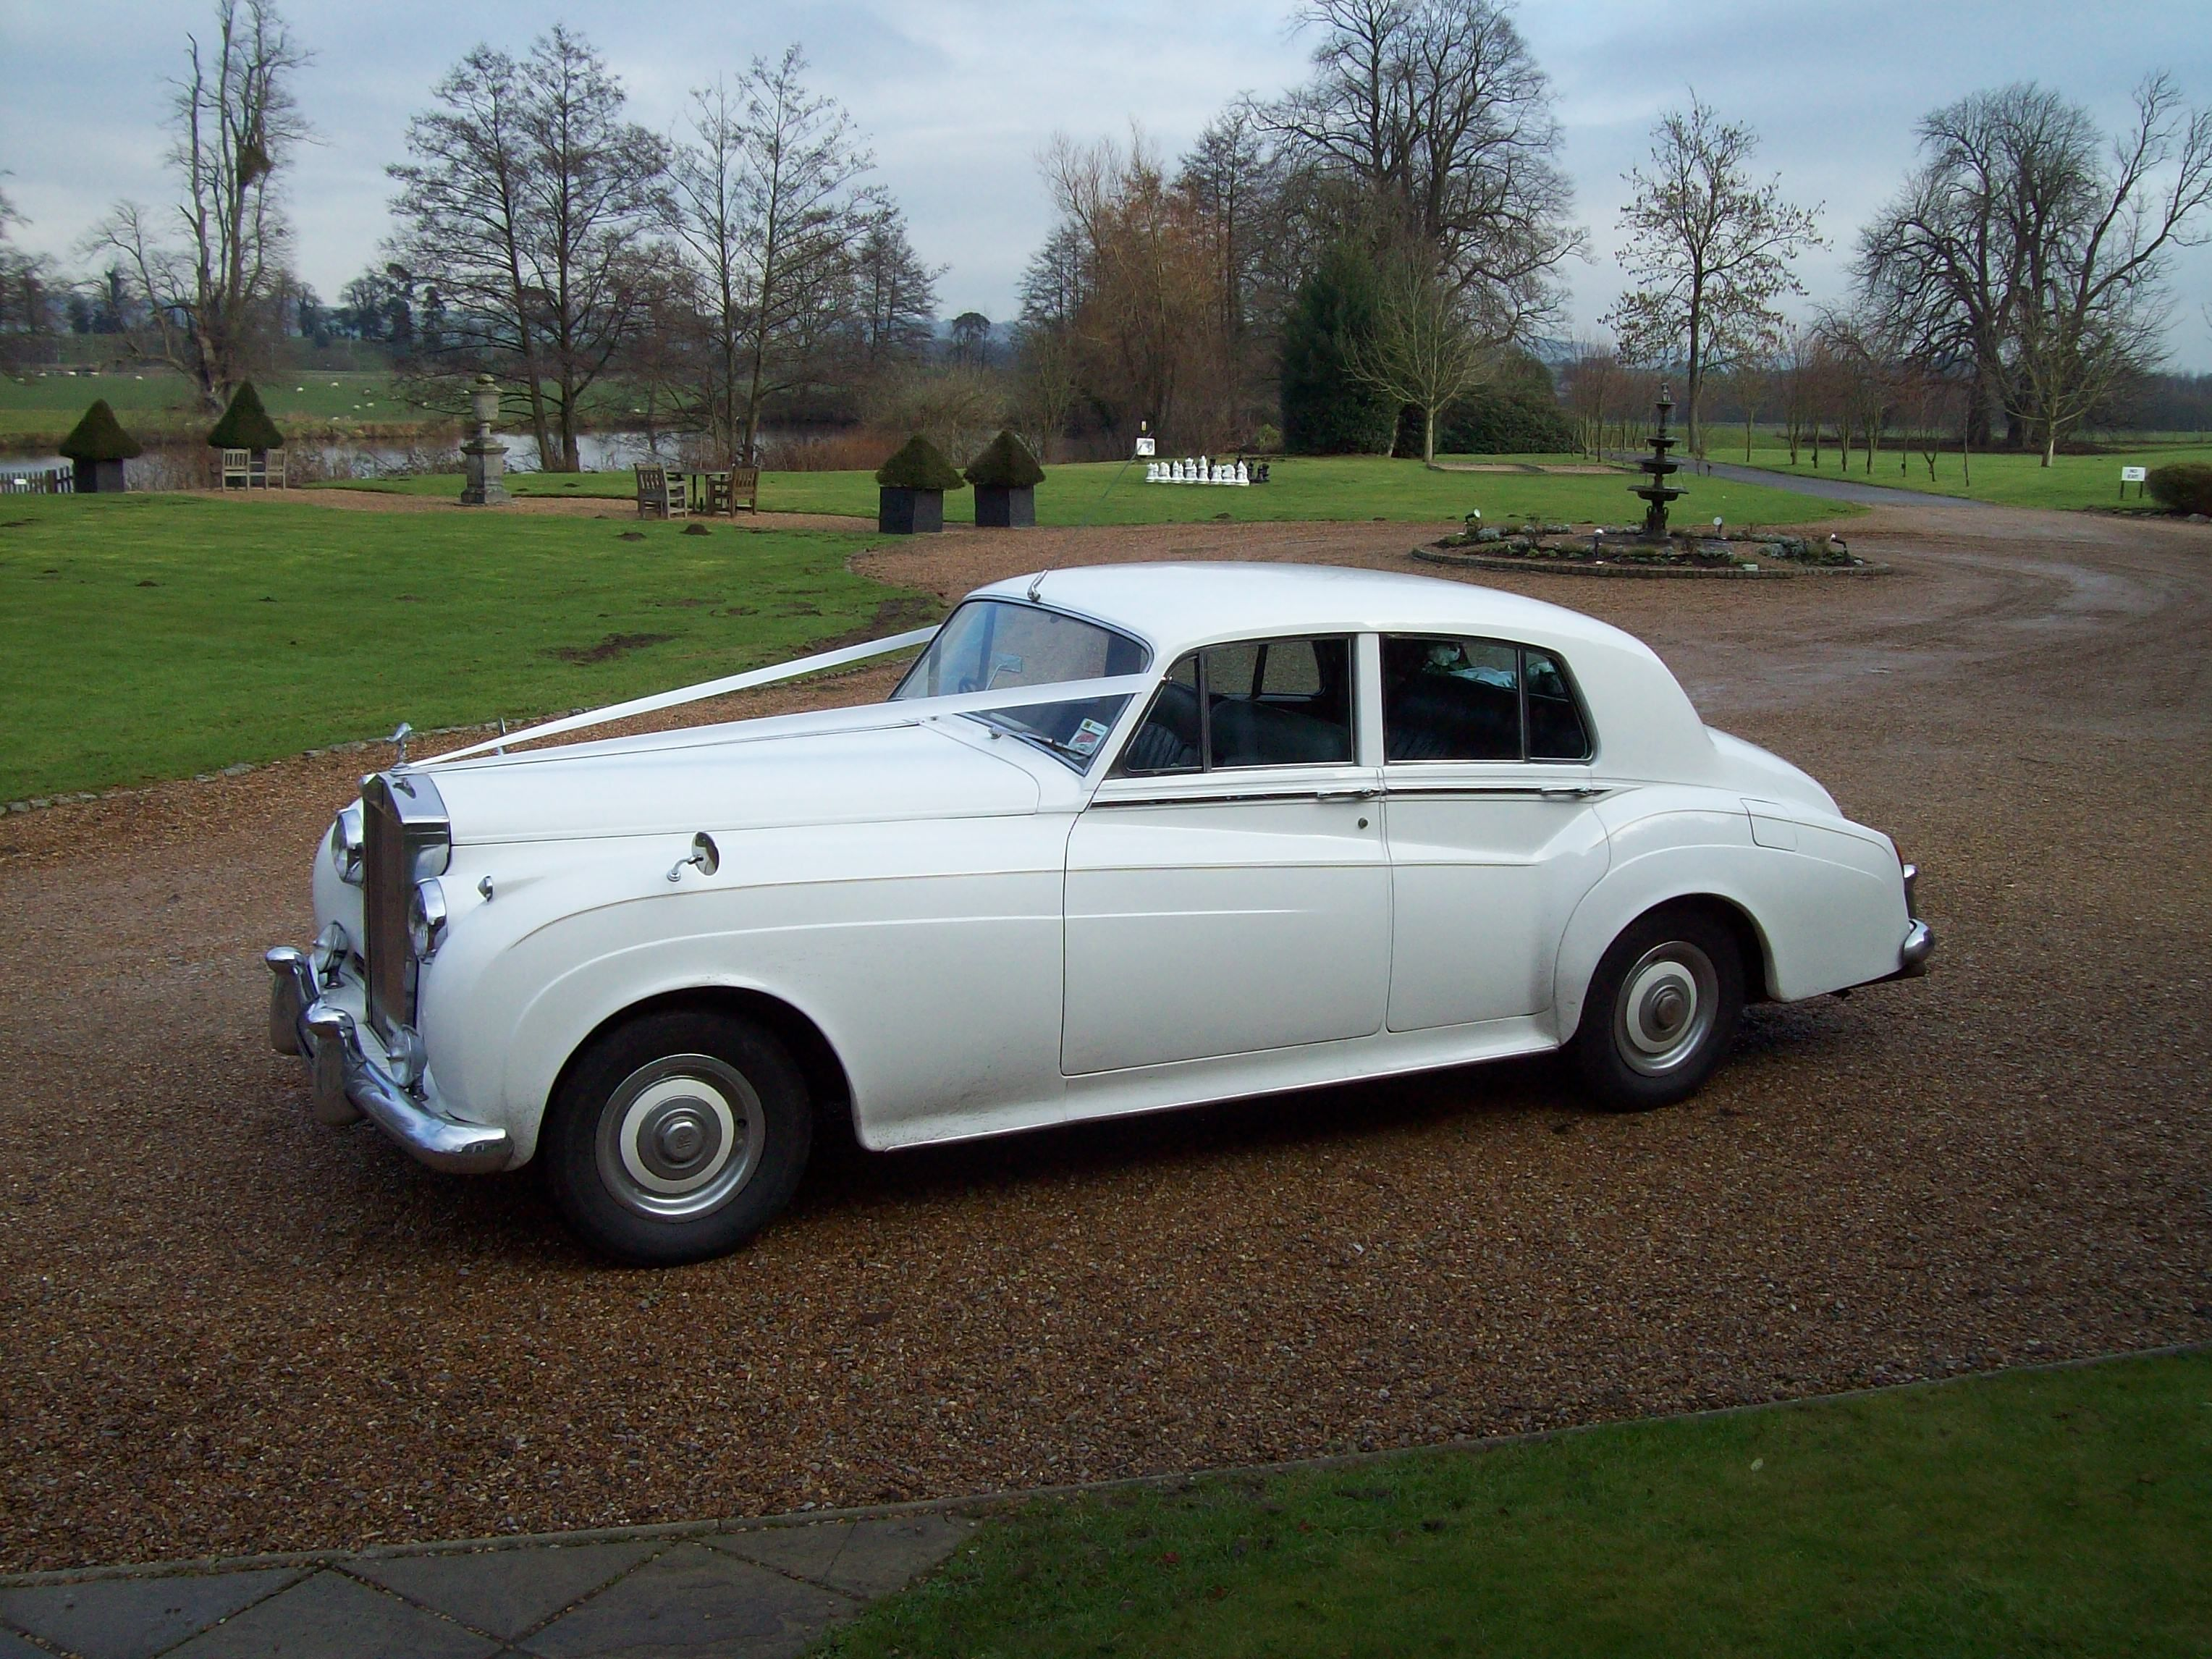 The most beautiful of all Rolls Royce models, the vintage ROLLS ROYCE SILVER CLOUD, has huge presence at 18 feet long, with graceful curves it is the perfect style of a Rolls Royce. To book contact http://weddingcarskentmedway.co.uk